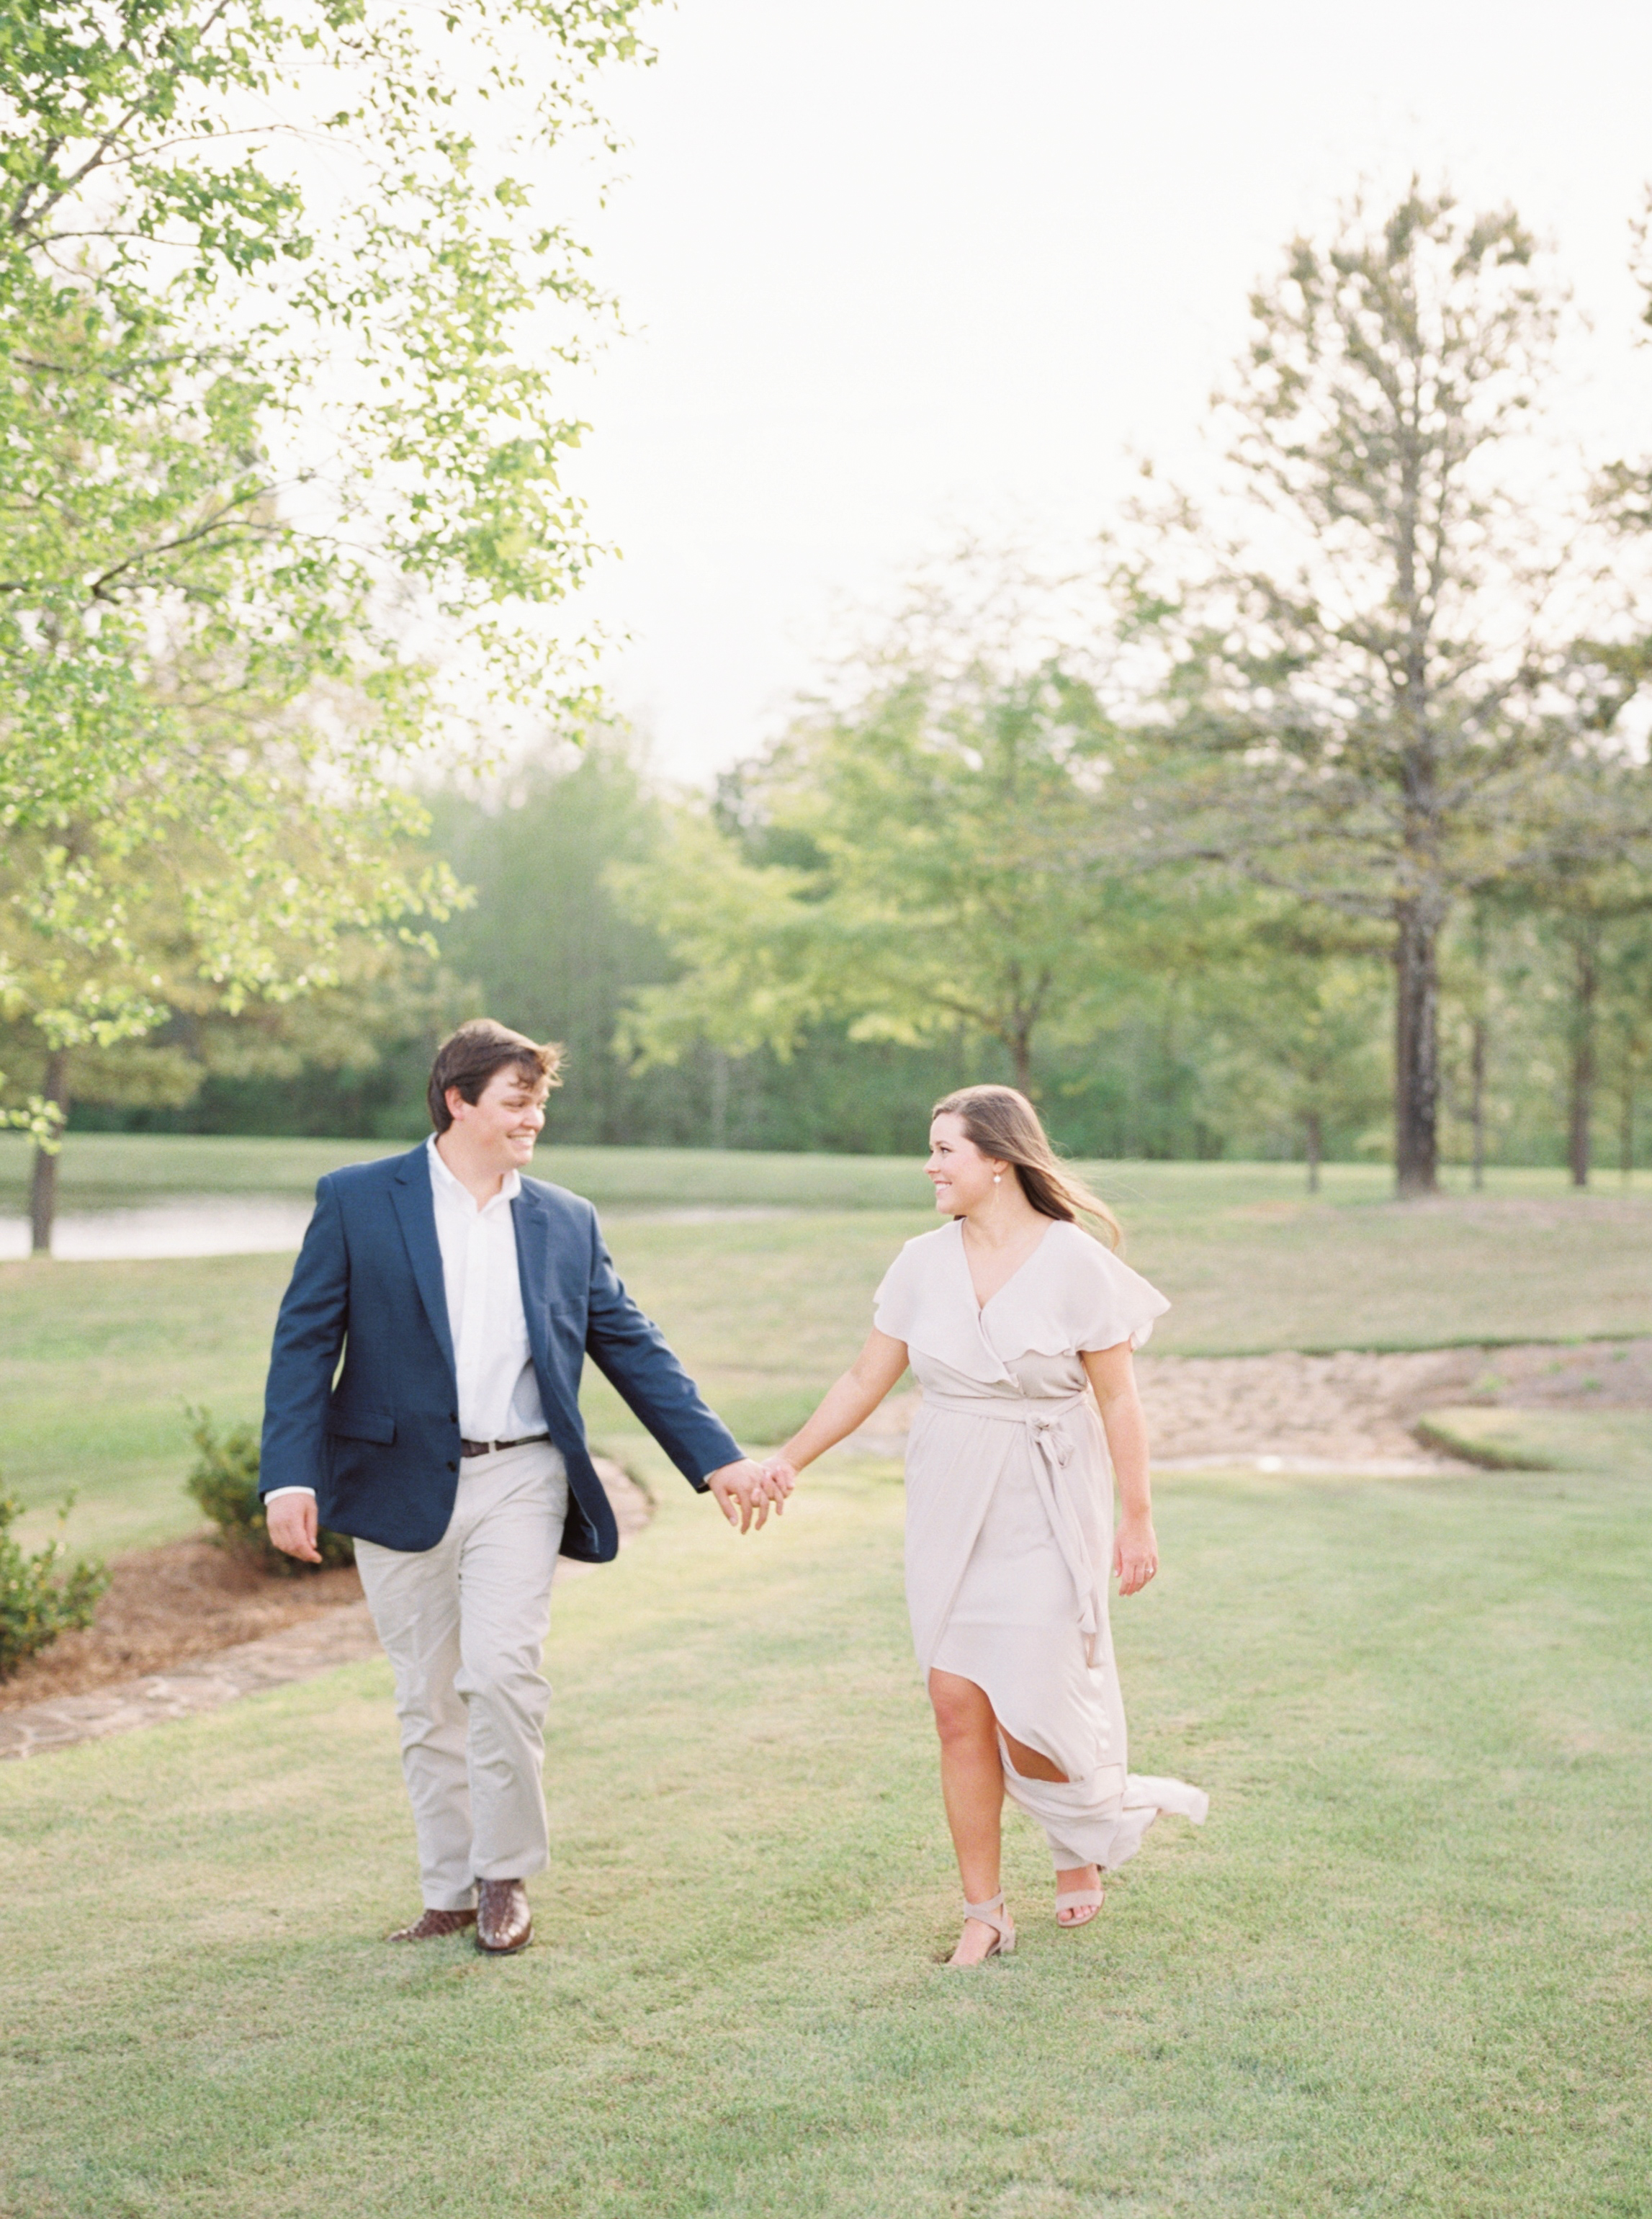 Landon_Grant_Carter_Film_Engagement_Session_Lake_Fallen_Photography_Columbus_Georgia-37.JPG